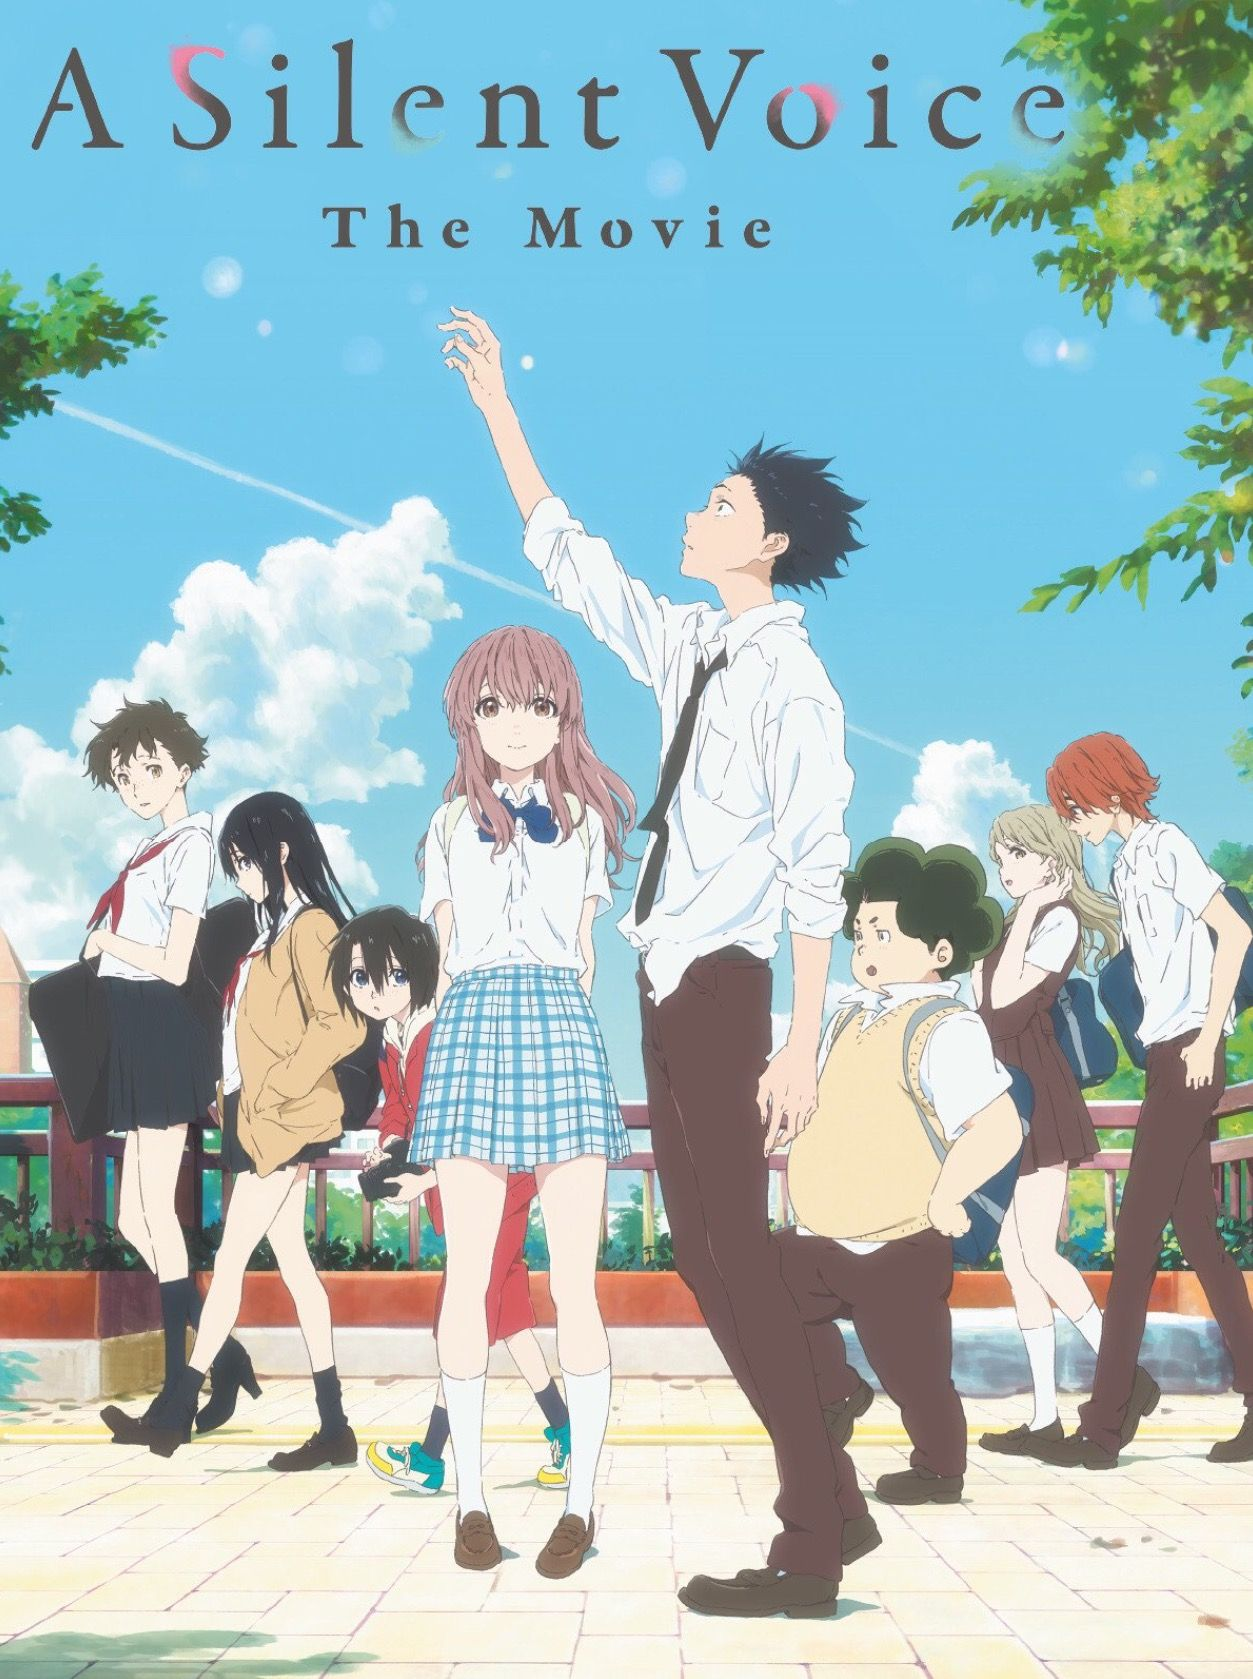 A silent voice bluray bd episode 01 h264 01 hevc h265 480p 720p 1080p english subbed download koe no katachi movies online movies to watch